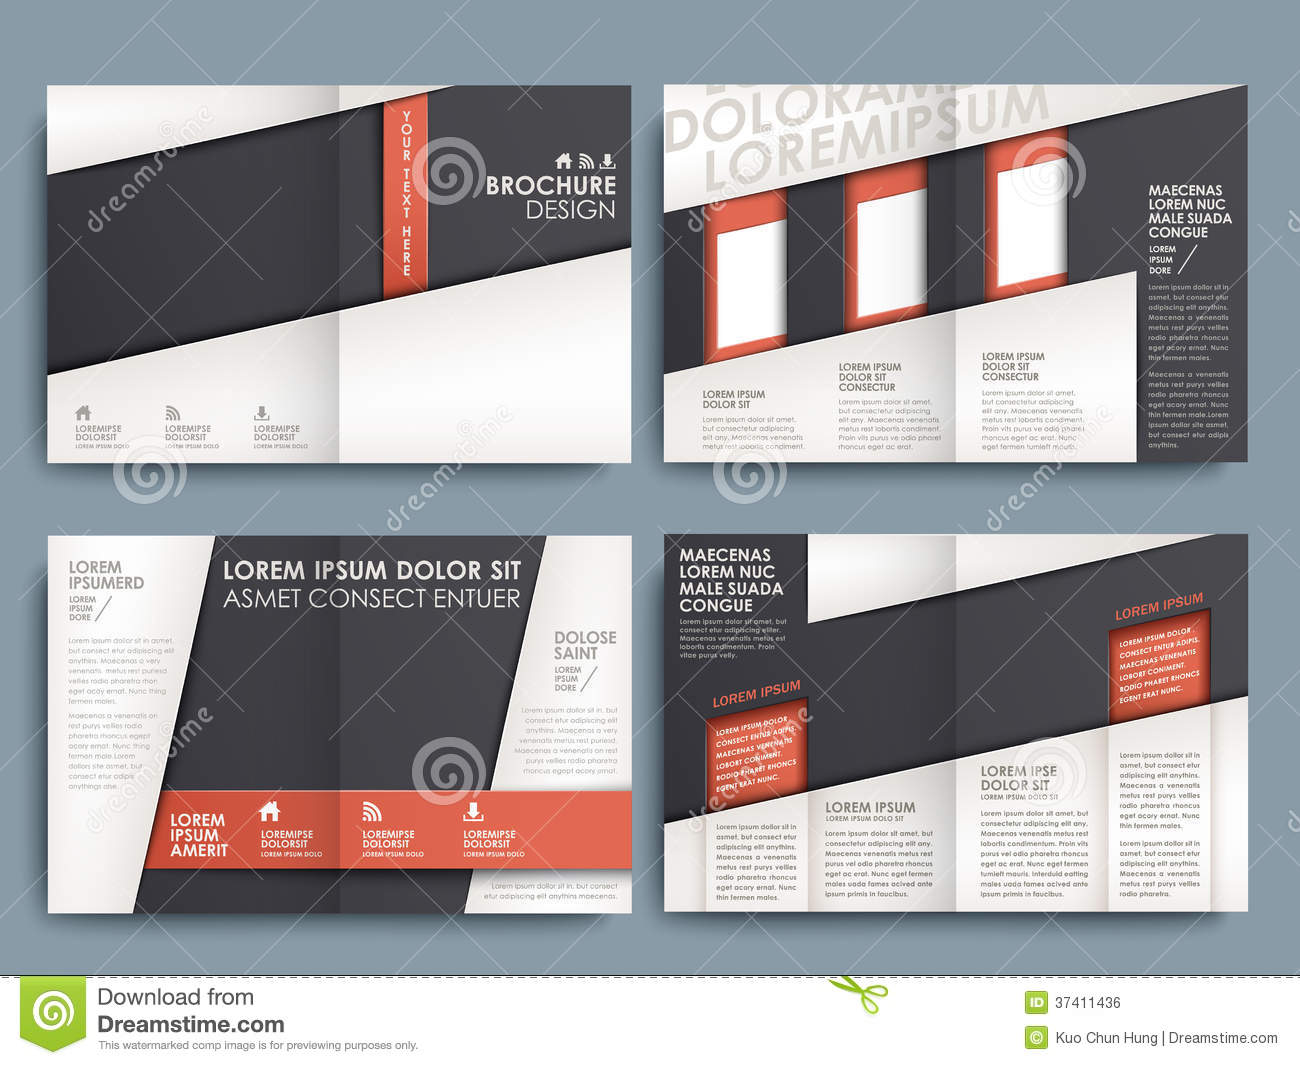 brochure design layout ideas - vector brochure layout design template stock vector